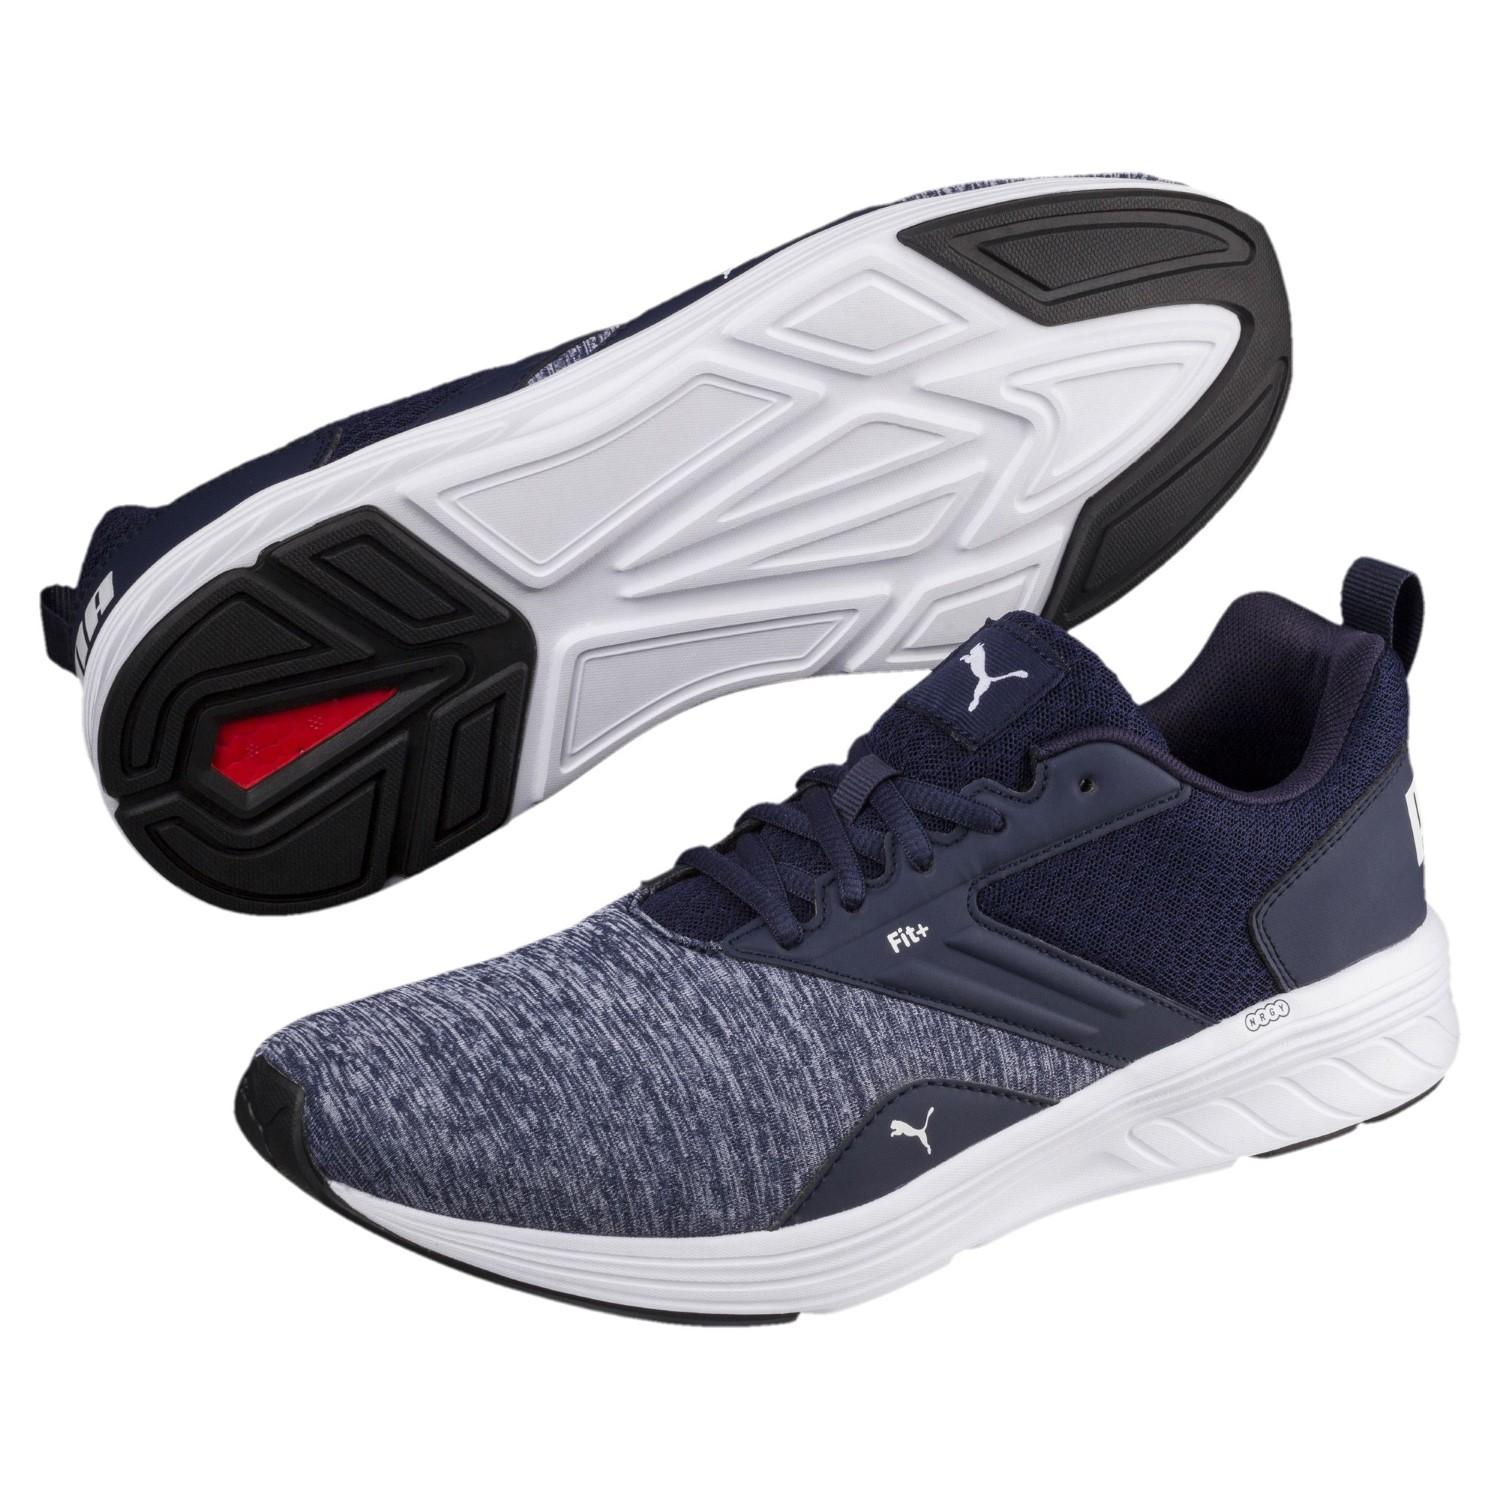 d90fca700ed082 Lyst - PUMA Nrgy Comet Running Shoes in Blue for Men - Save 38%